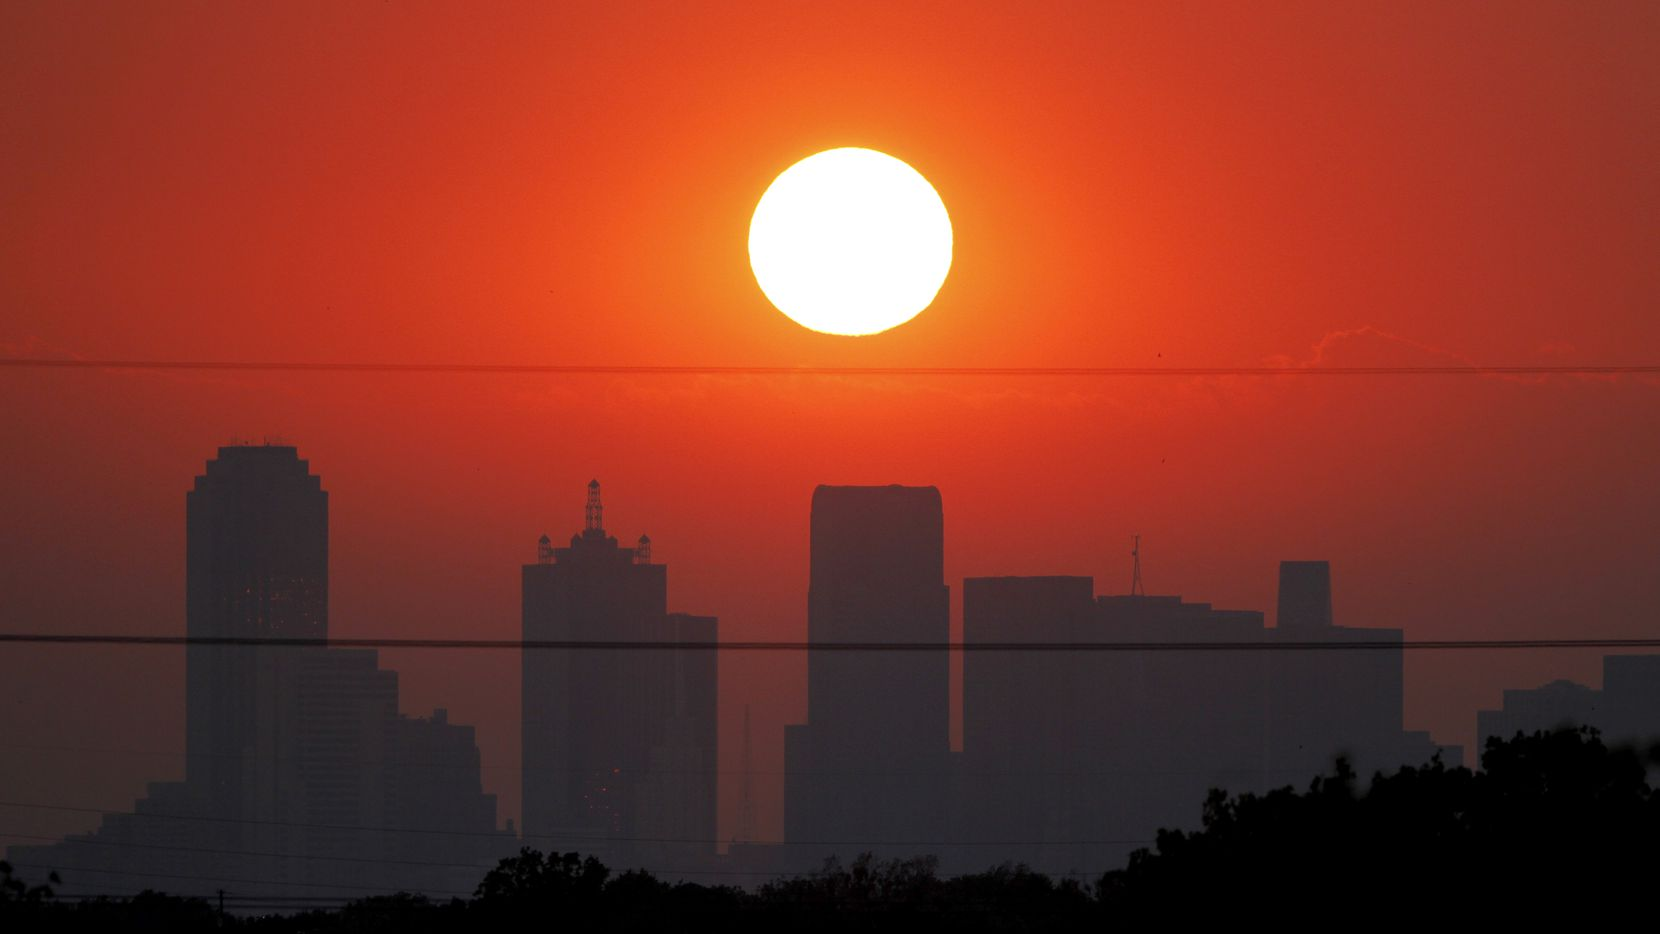 Temperatures are expected to hit the upper 90s in Dallas  on Thursday but it will feel much hotter, with heat index values above 105.